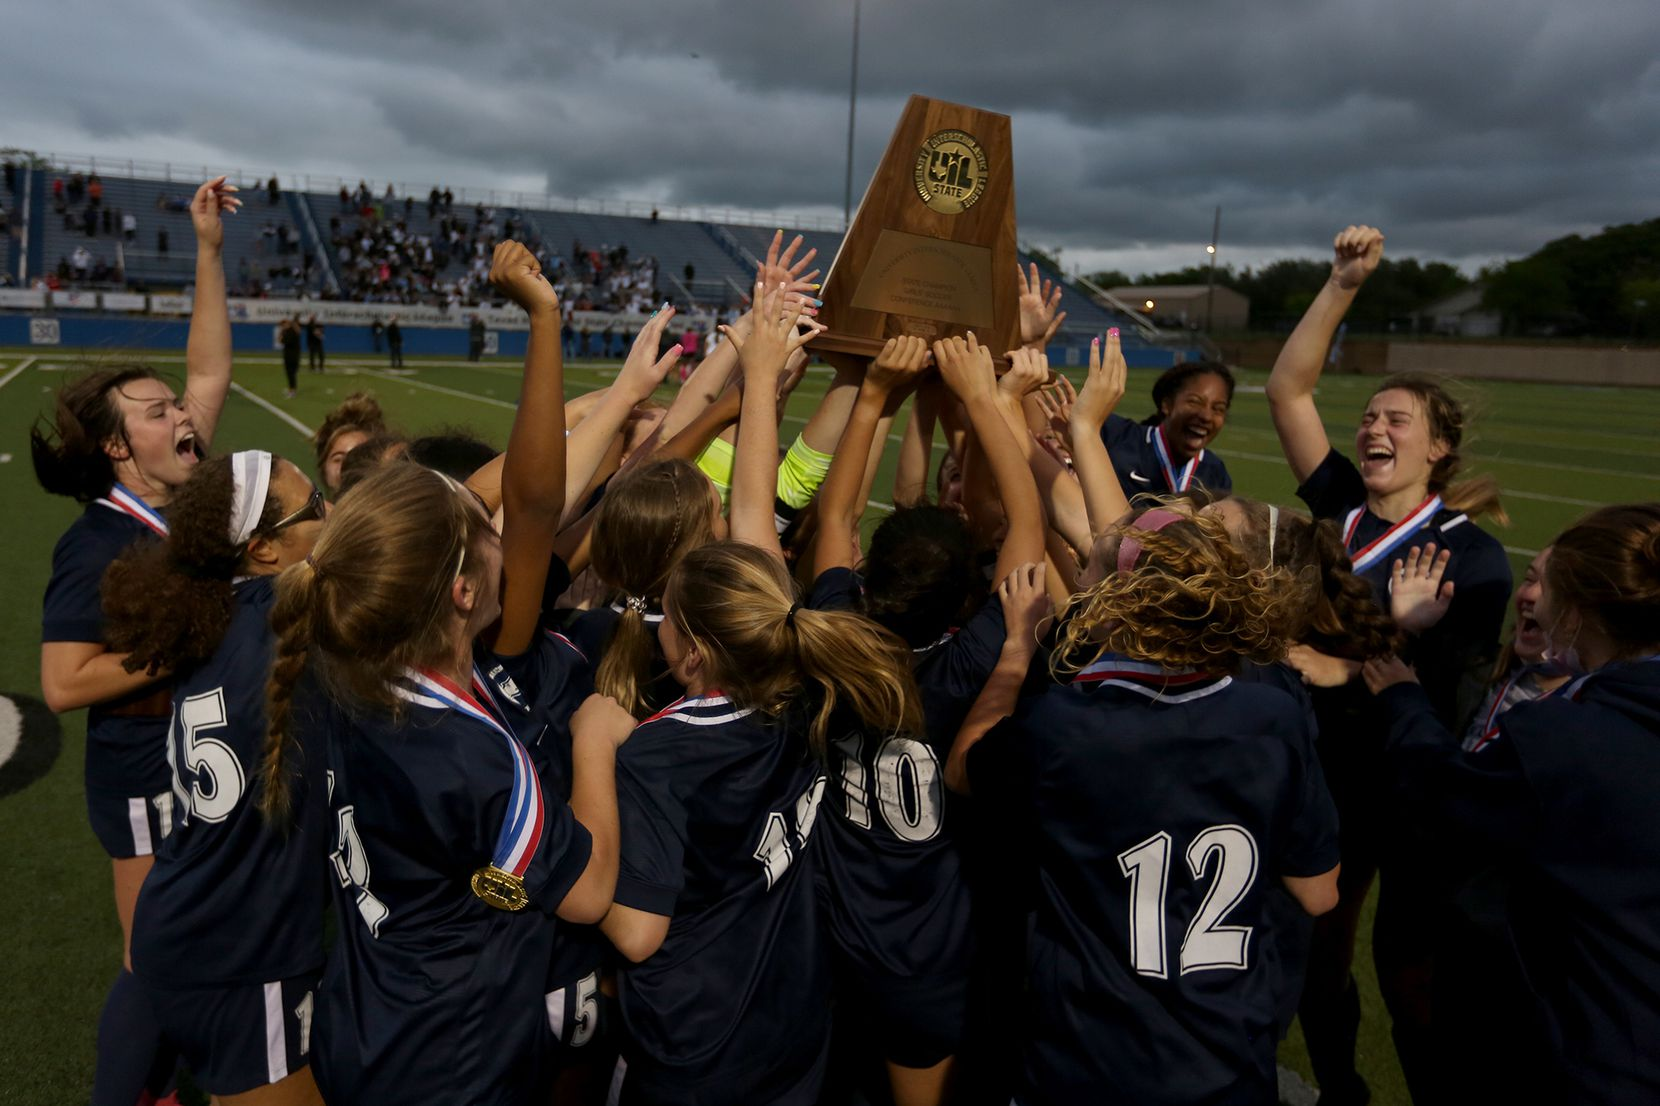 Lewisville Flower Mound players celebrate with the trophy after their UIL 6A girls State championship soccer game against Austin Vandegrift at Birkelbach Field on April 16, 2021 in Georgetown, Texas. Lewisville Flower Mound won 2-1. (Thao Nguyen/Special Contributor)